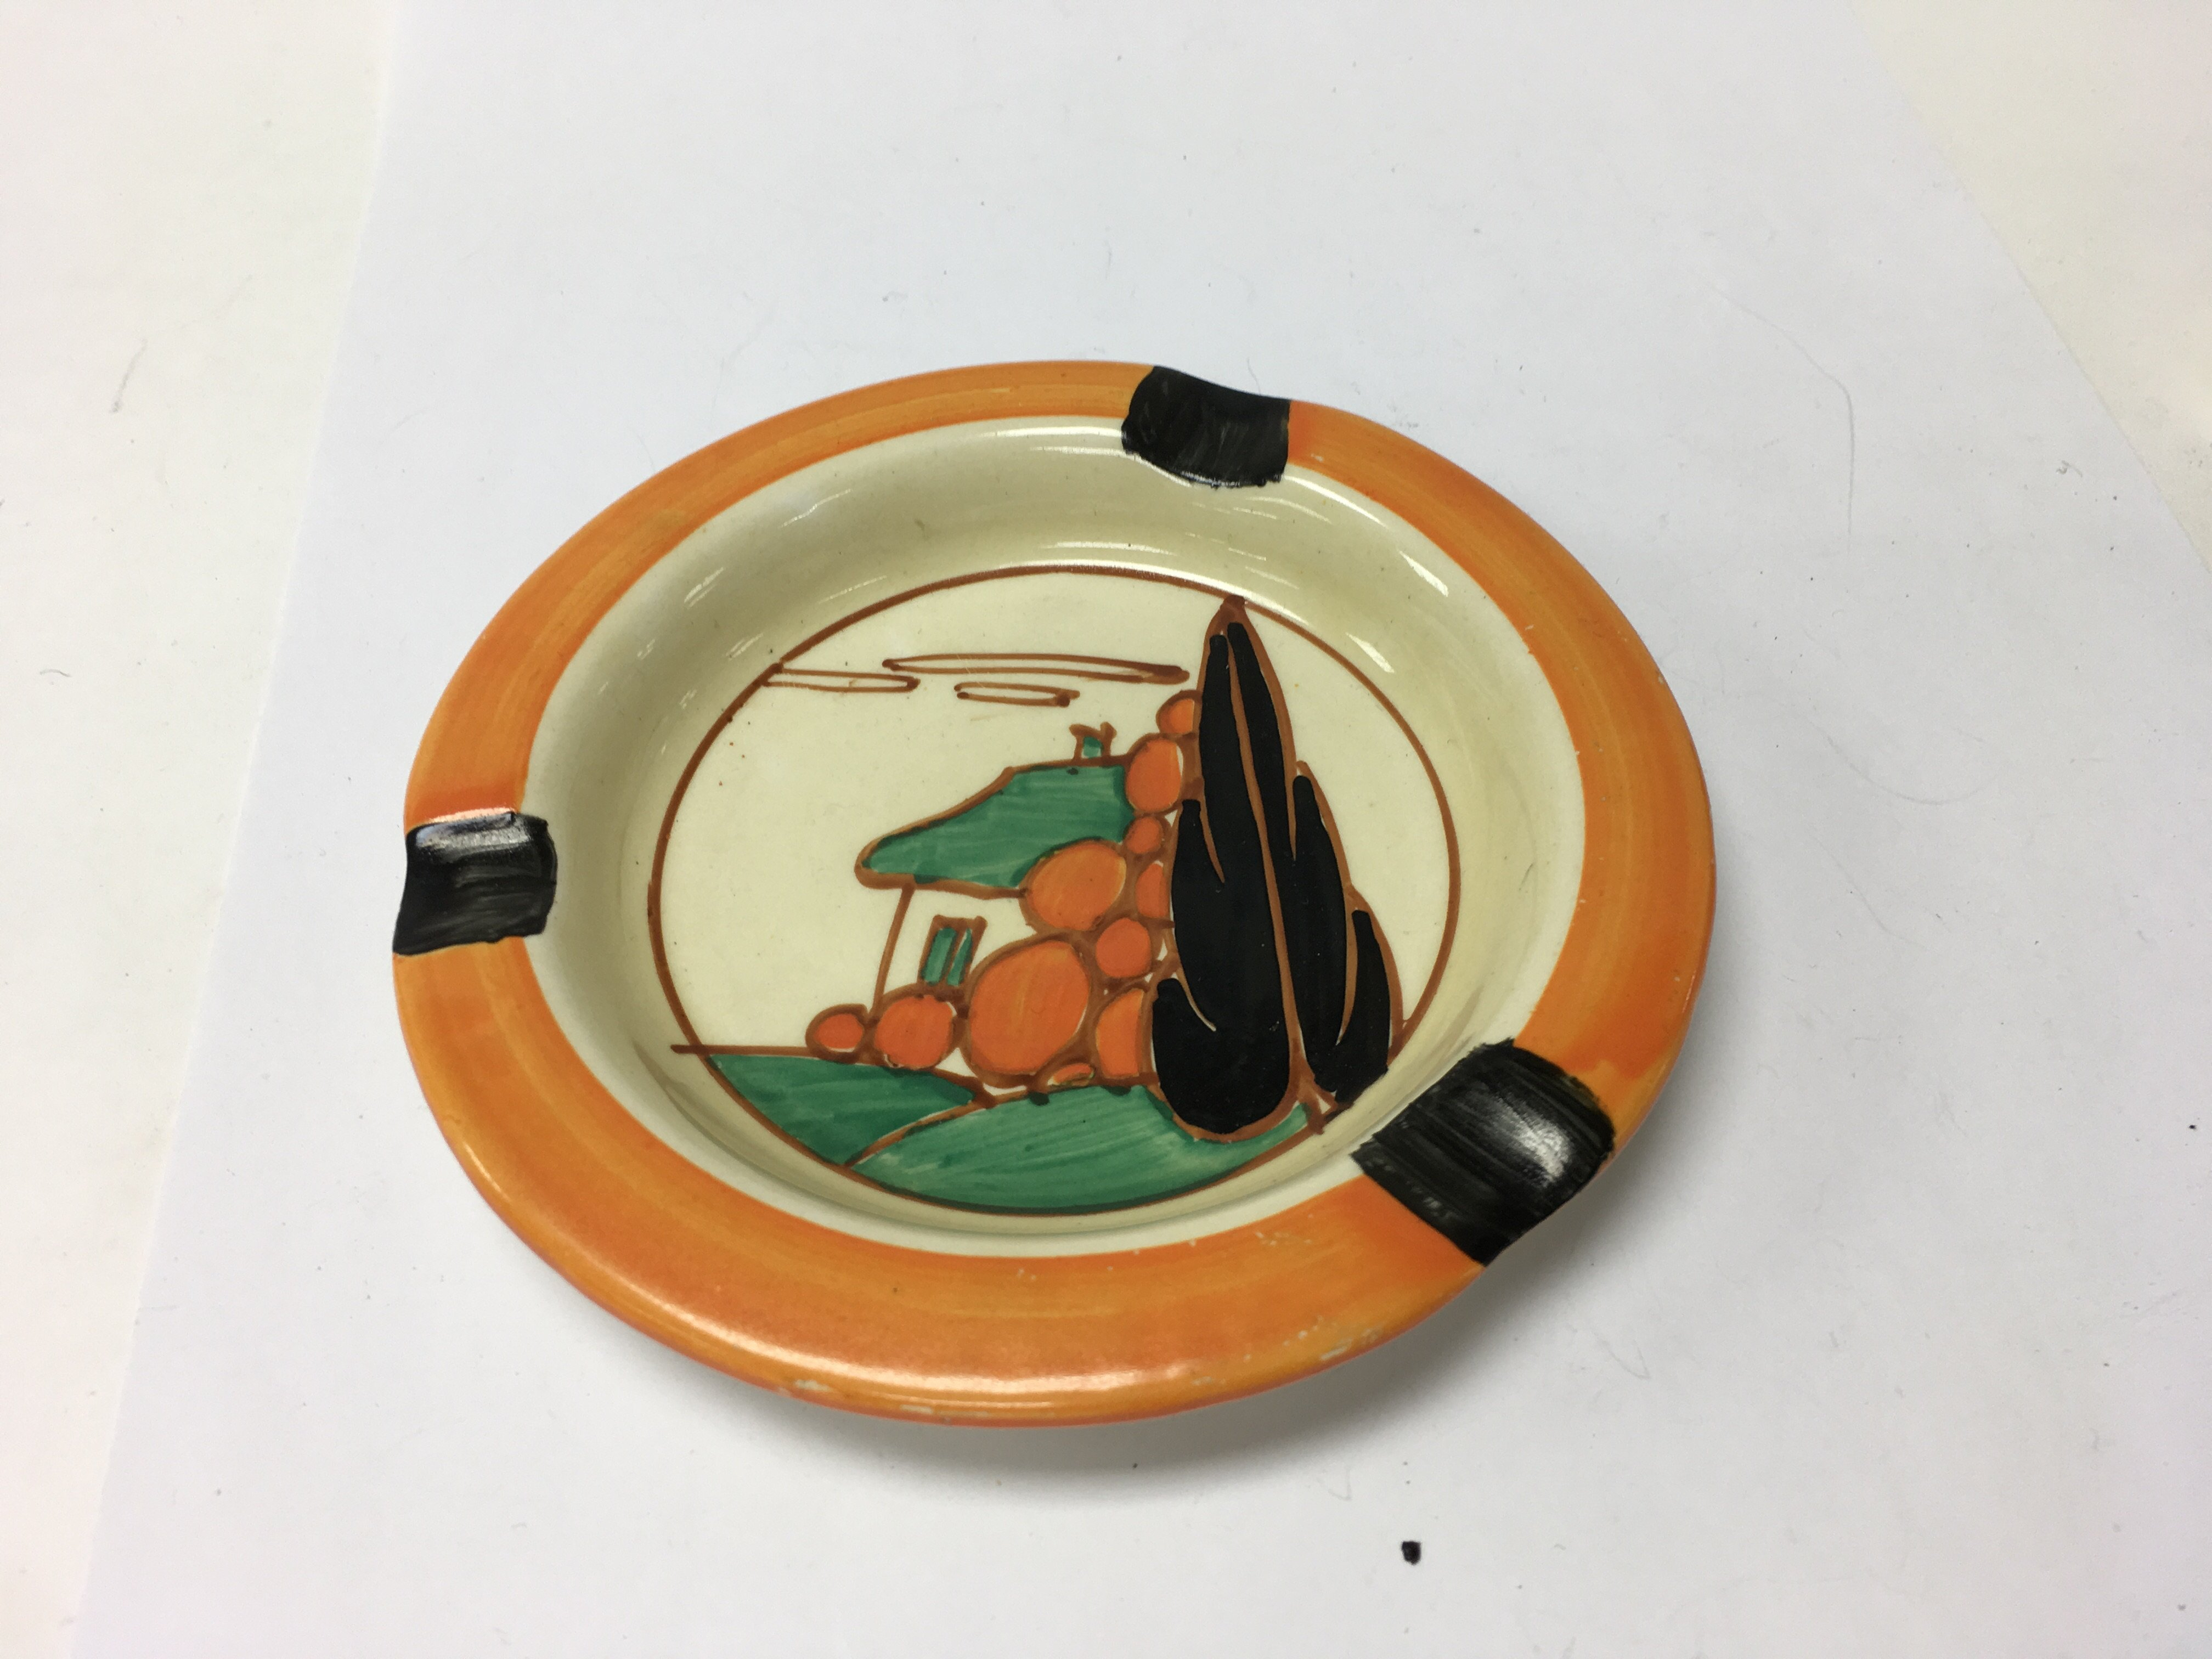 Lot 784 - A Clarice Cliff ash tray decorated with the house